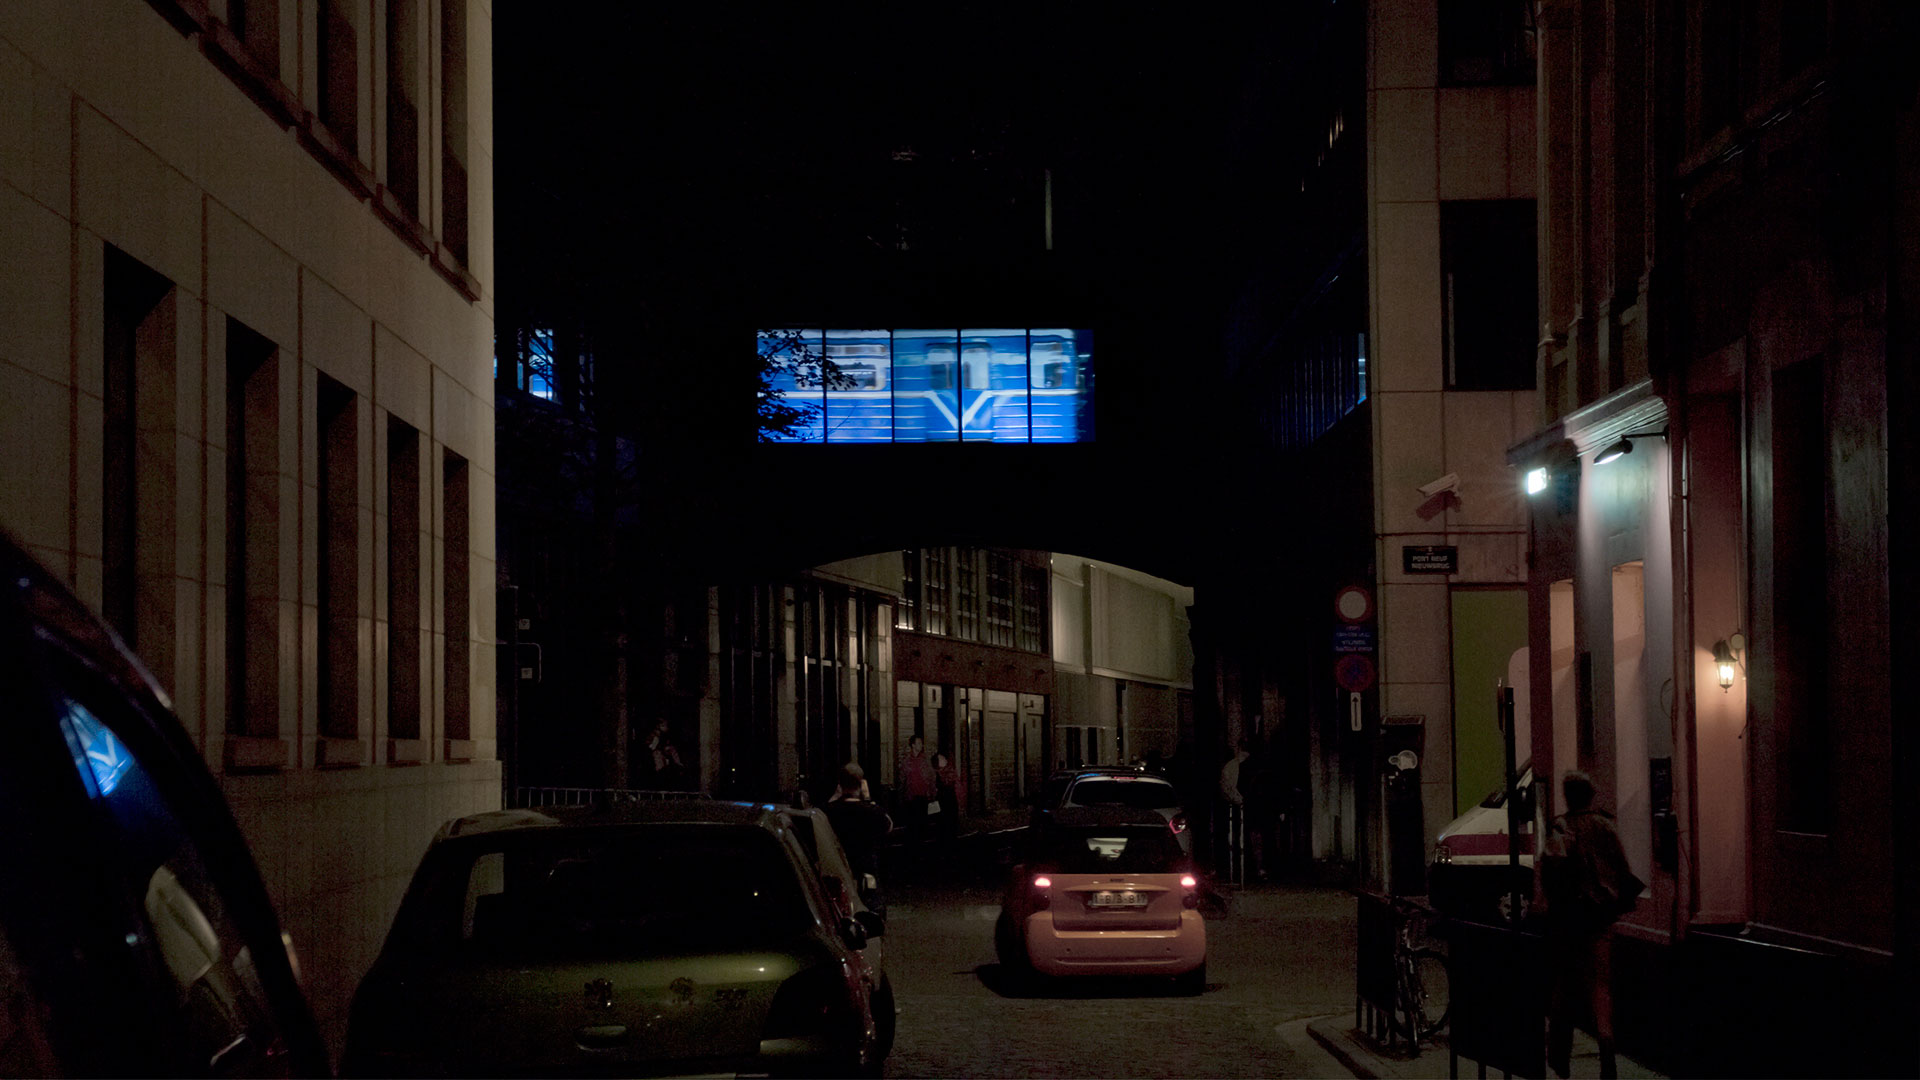 "HR-Stamenov, The Phenomenon of W24°58'59,43""N42° 07'55,29"", 2014, video installation with sound, public space, Brussels"